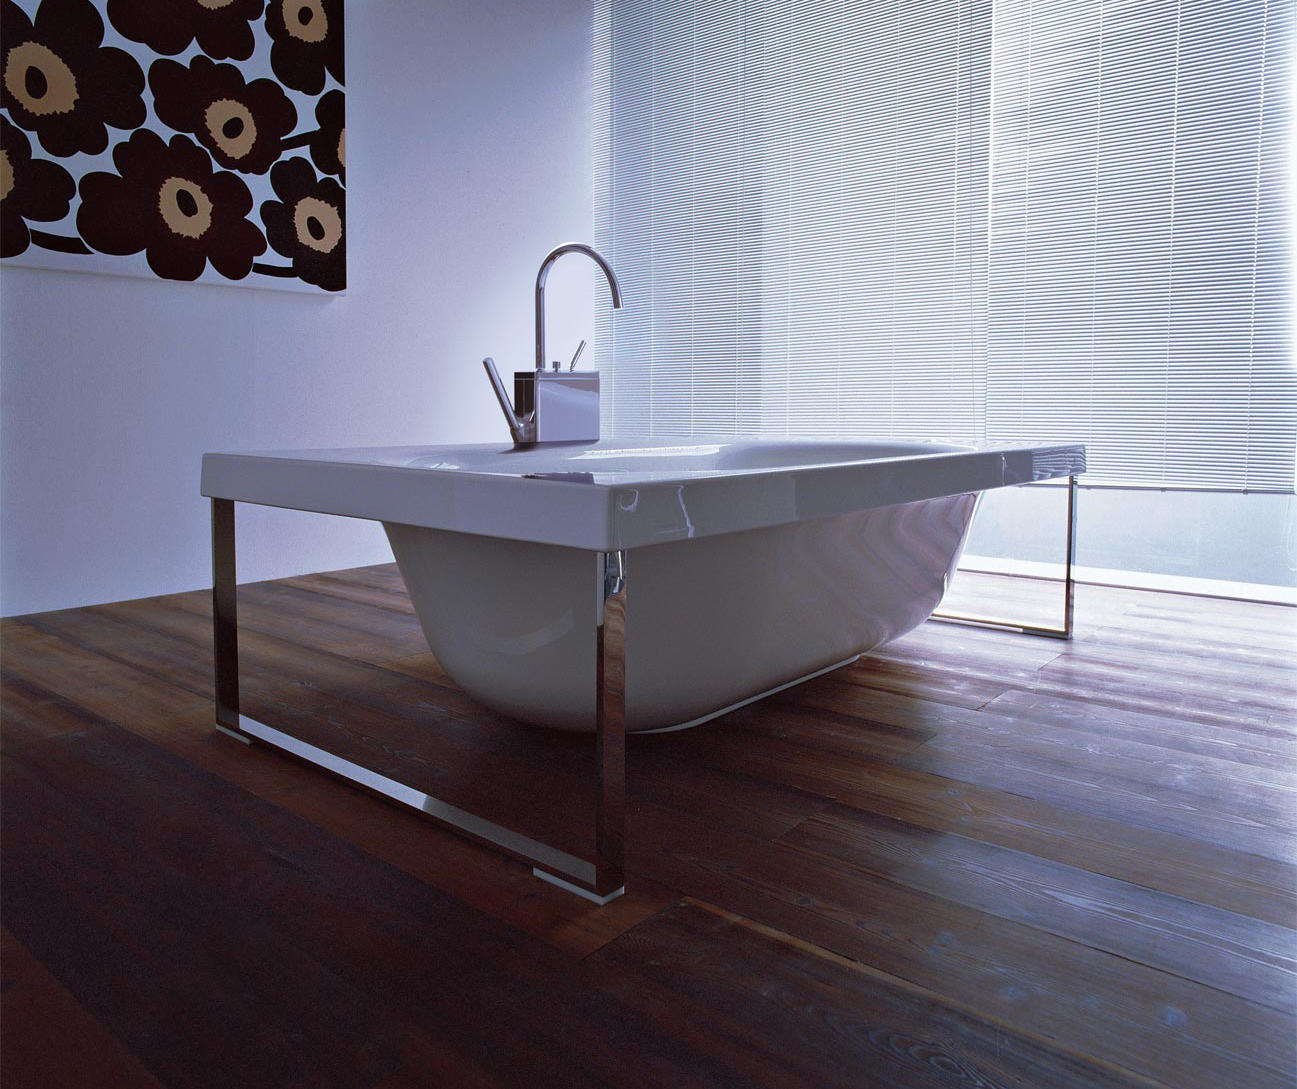 KAOS 2 - Built-in bathtubs from Kos | Architonic